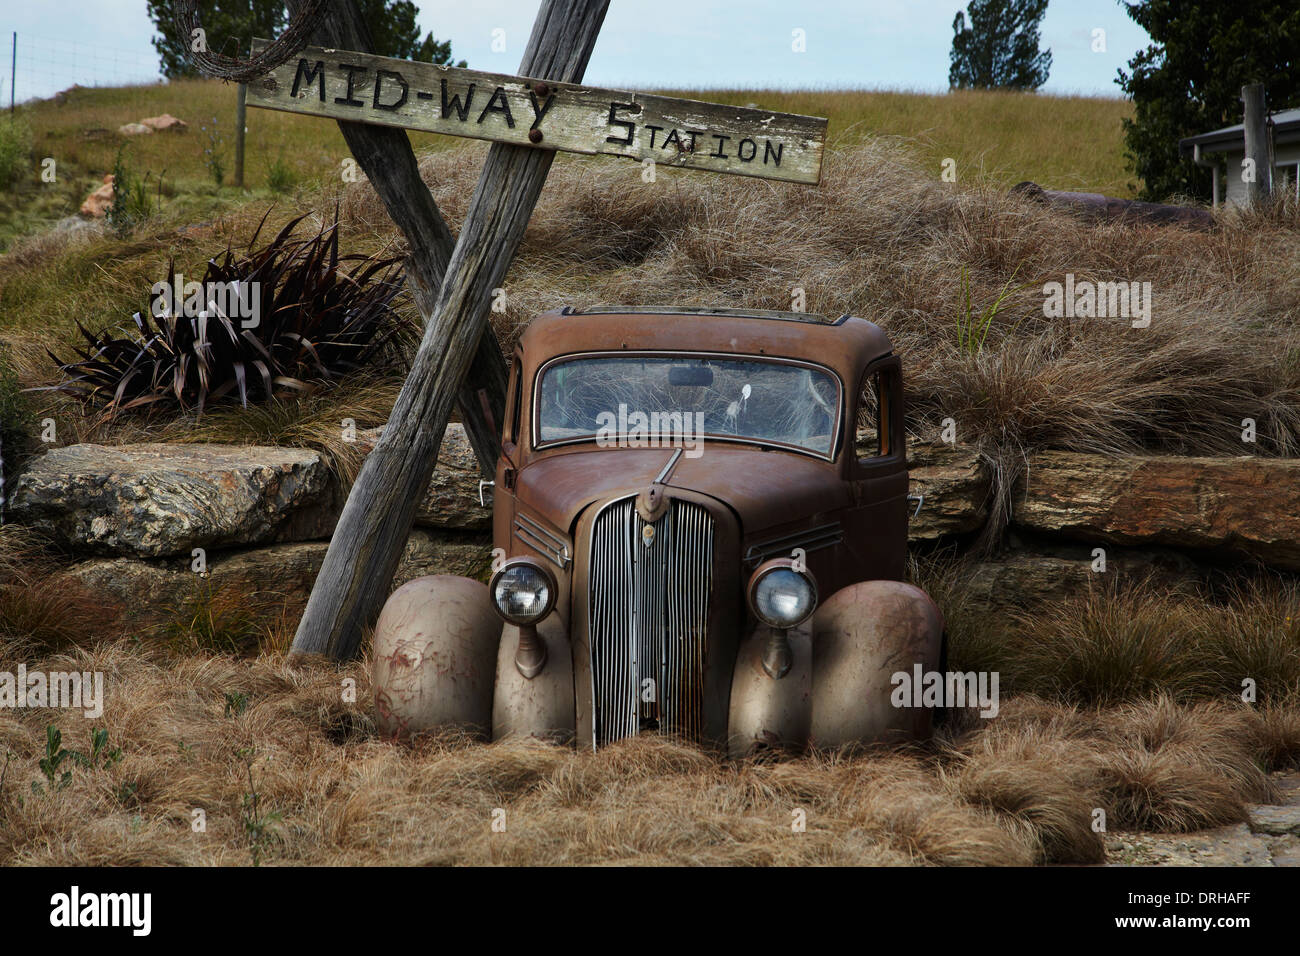 Old car at midway point between Alexandra and Chatto Creek, Otago Central Rail Trail, Central Otago, South Island, New Zealand - Stock Image